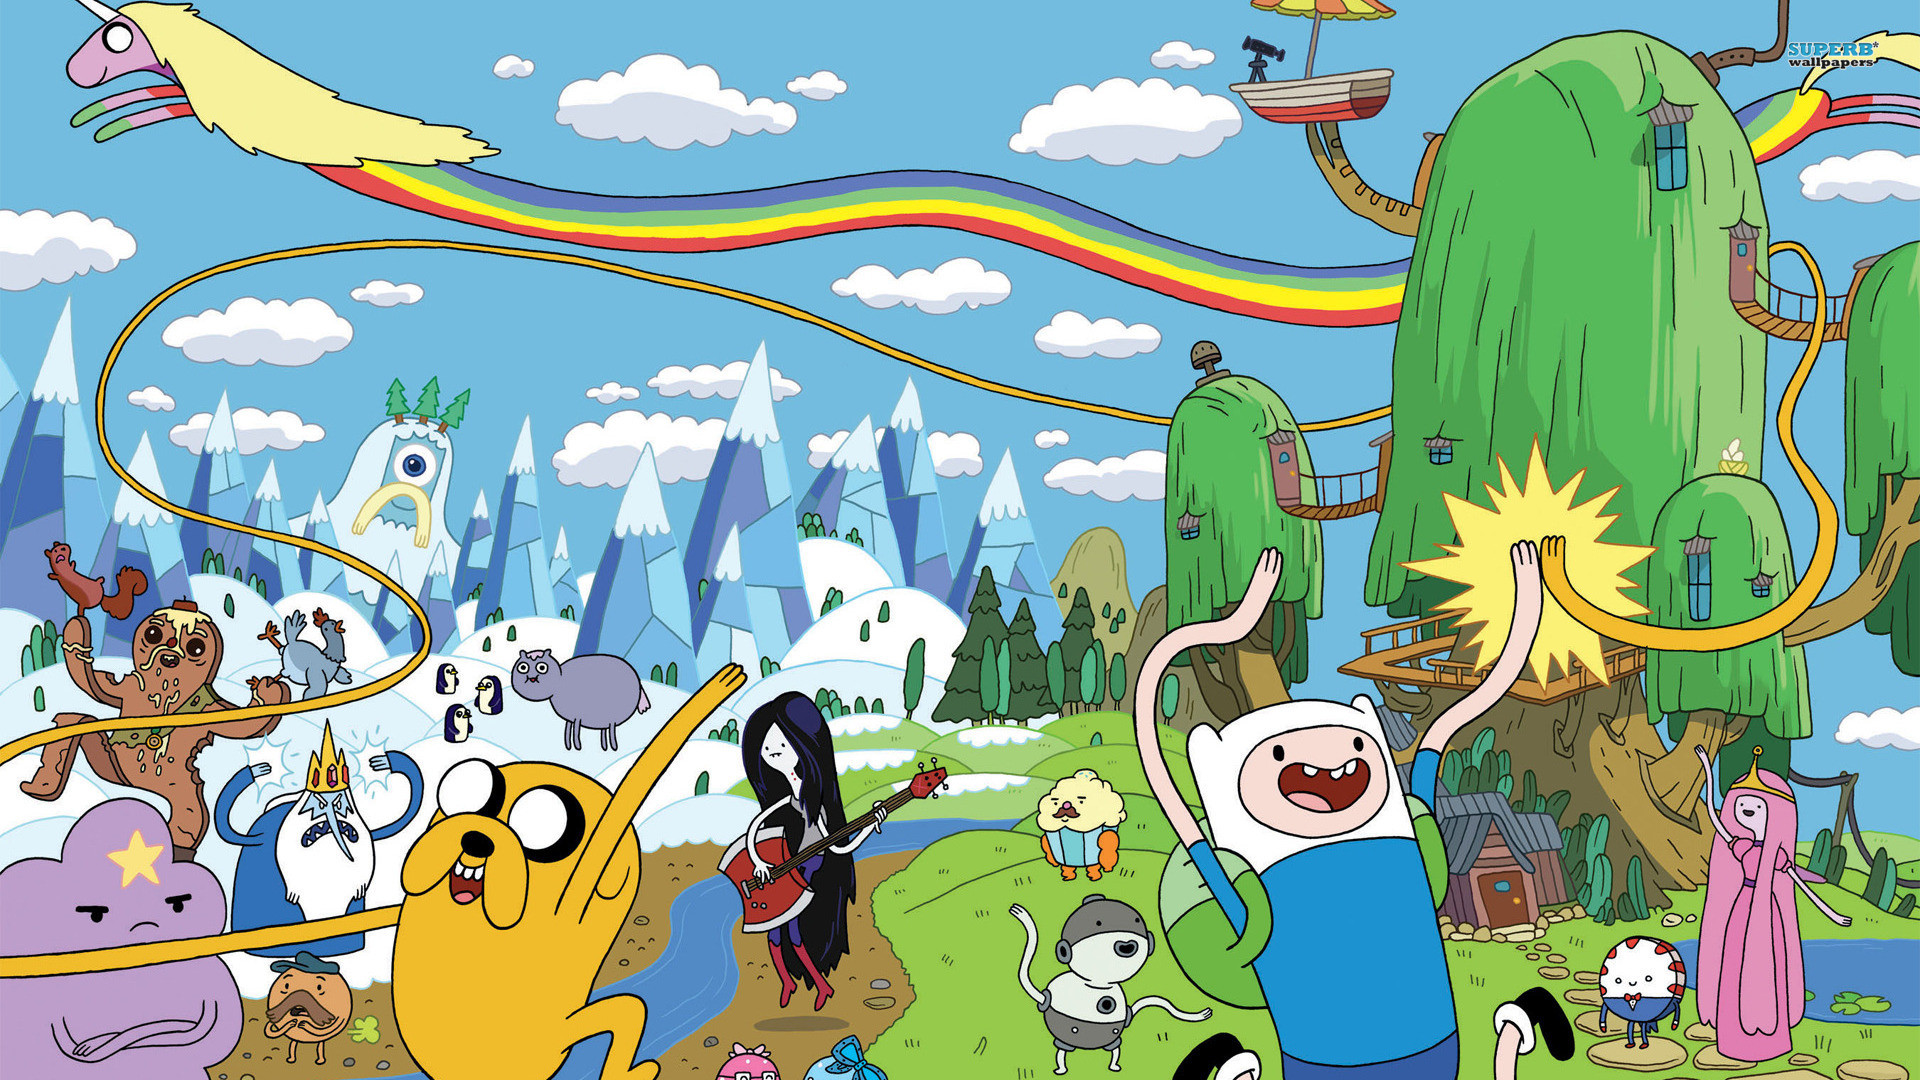 Adventure time wallpapers for desktop 55 images 1920x1080 adventure time wallpapers hd wallpapers early altavistaventures Choice Image